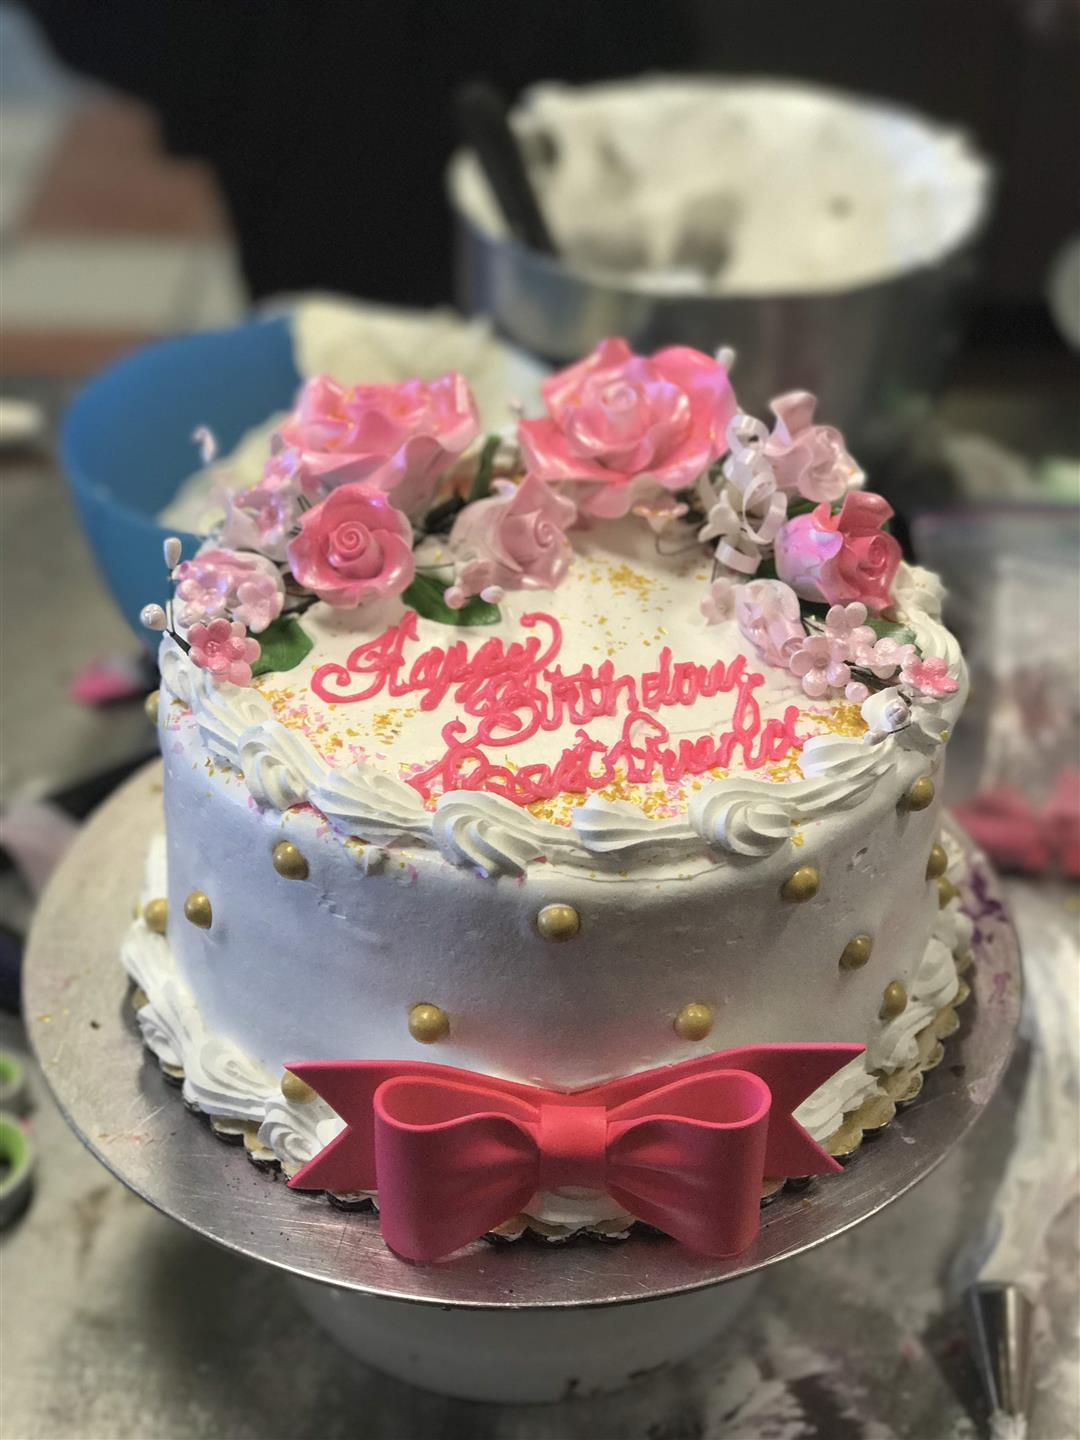 Birthday cake with rose petals